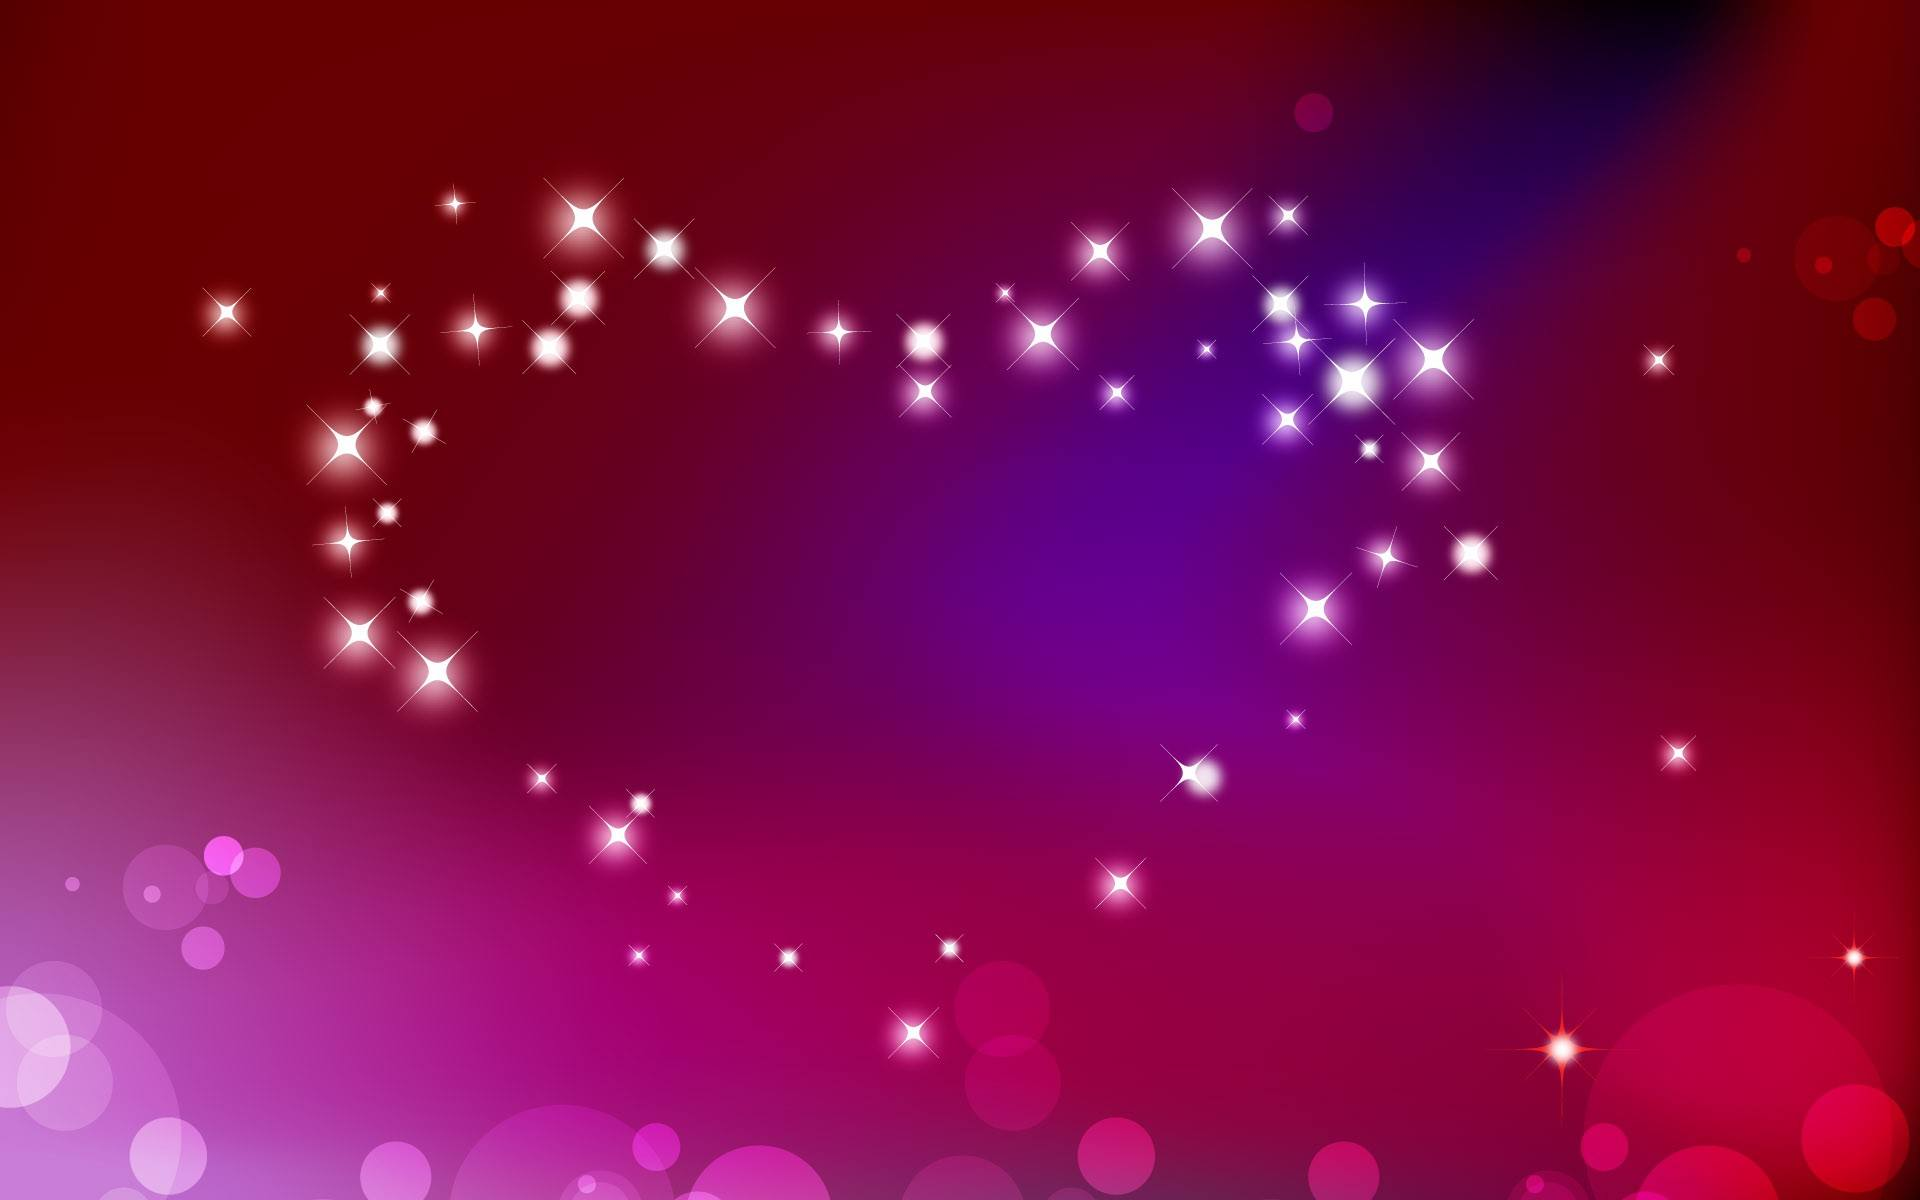 Hearth Love Vector Wallpaper 012